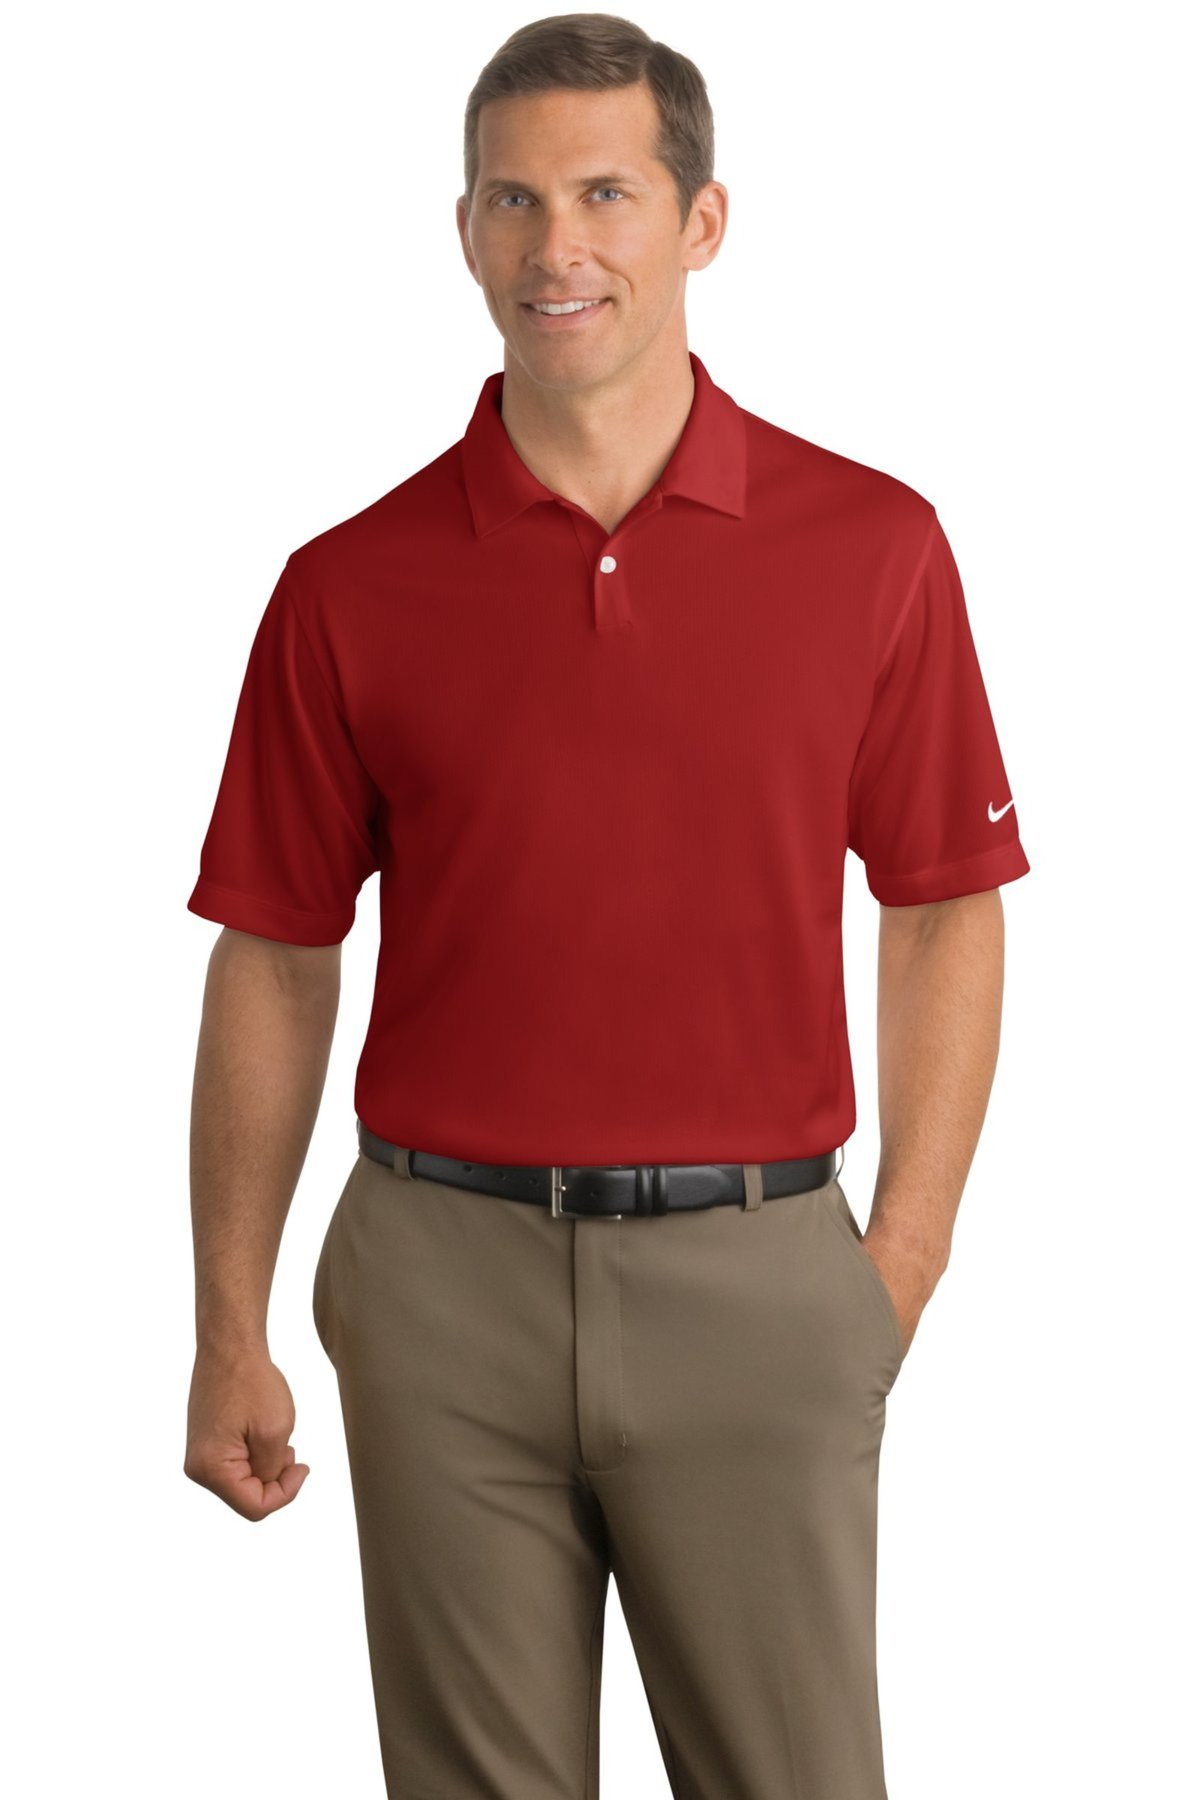 Nike Golf Embroidered Mens Dri Fit Pebble Texture Polo Queensboro